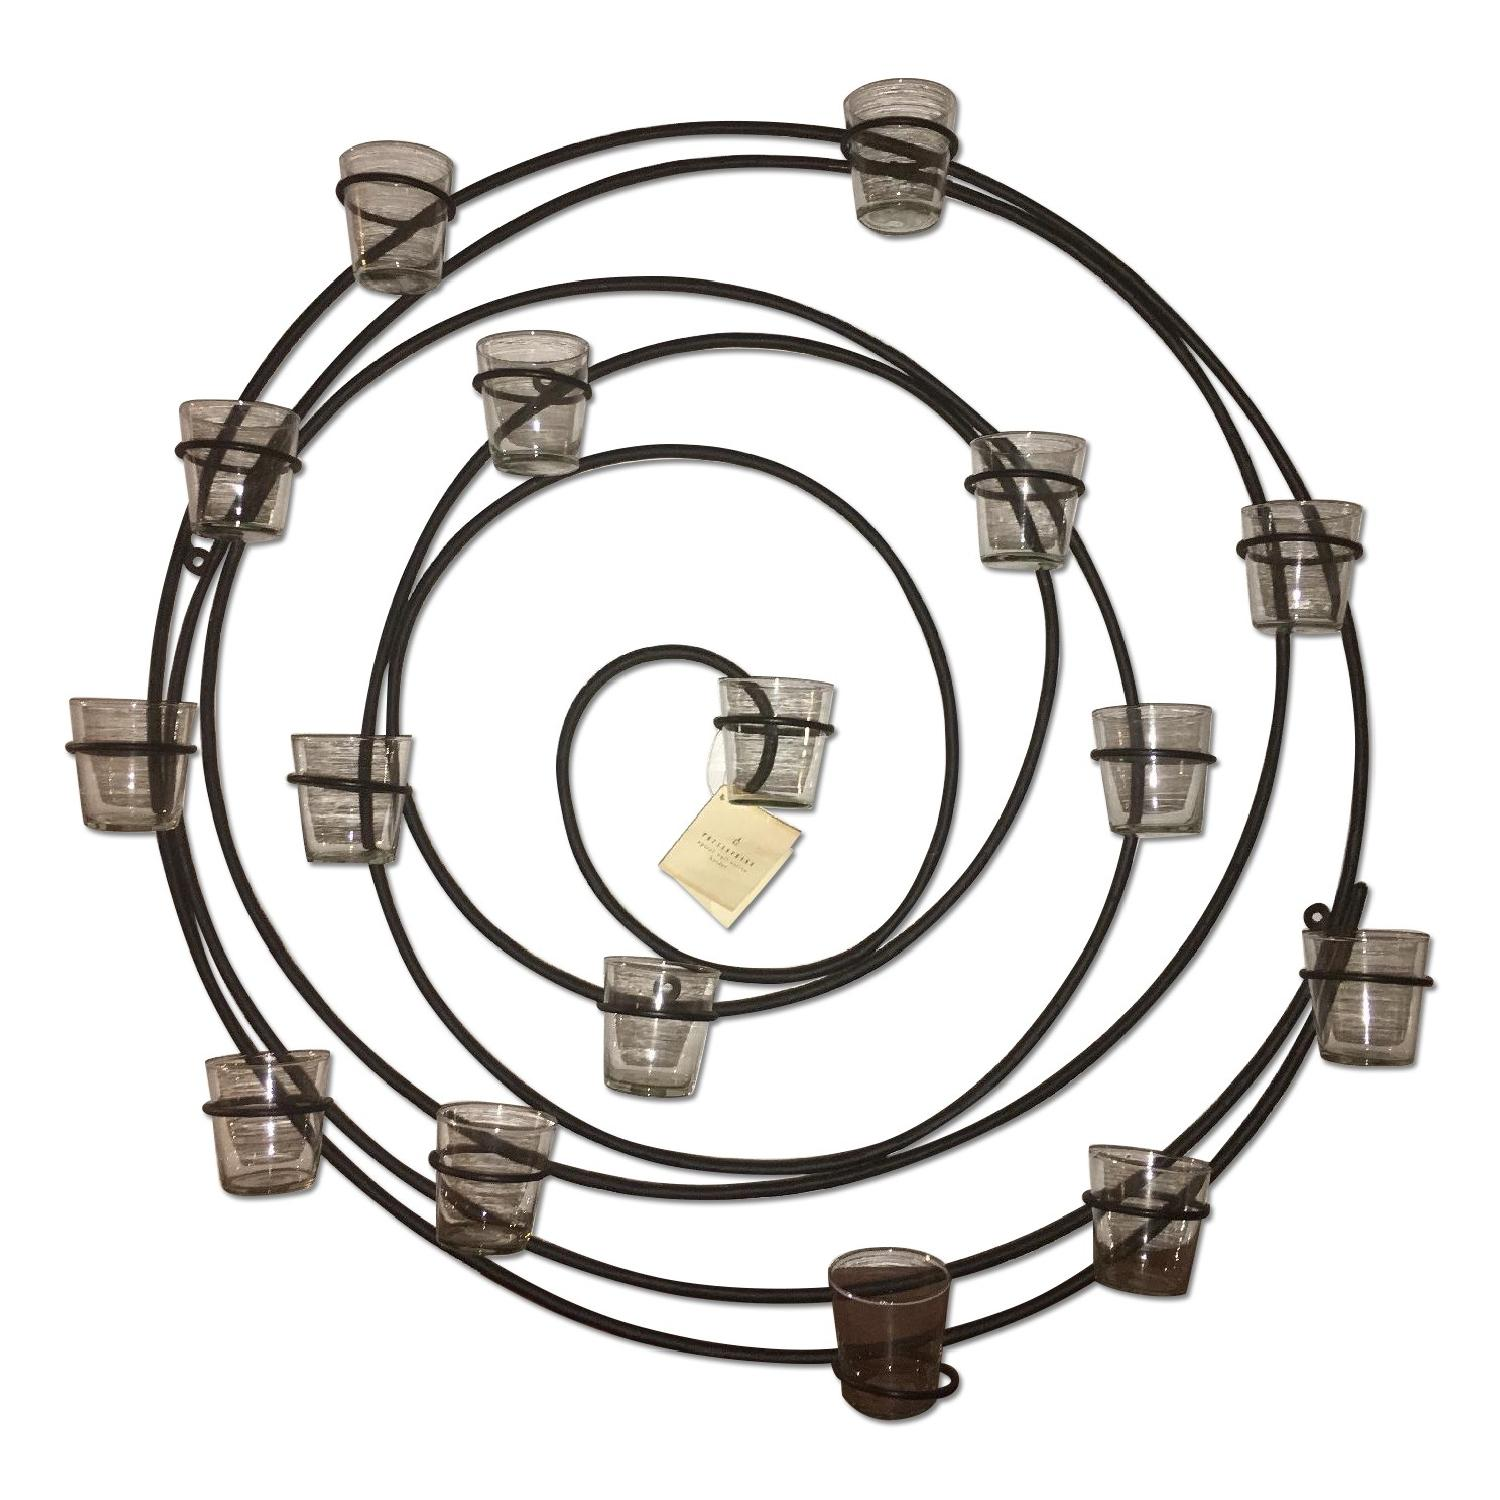 Pottery Barn Wrought Iron Spiral Wall Mount 16 Votive Candle Holder - image-0